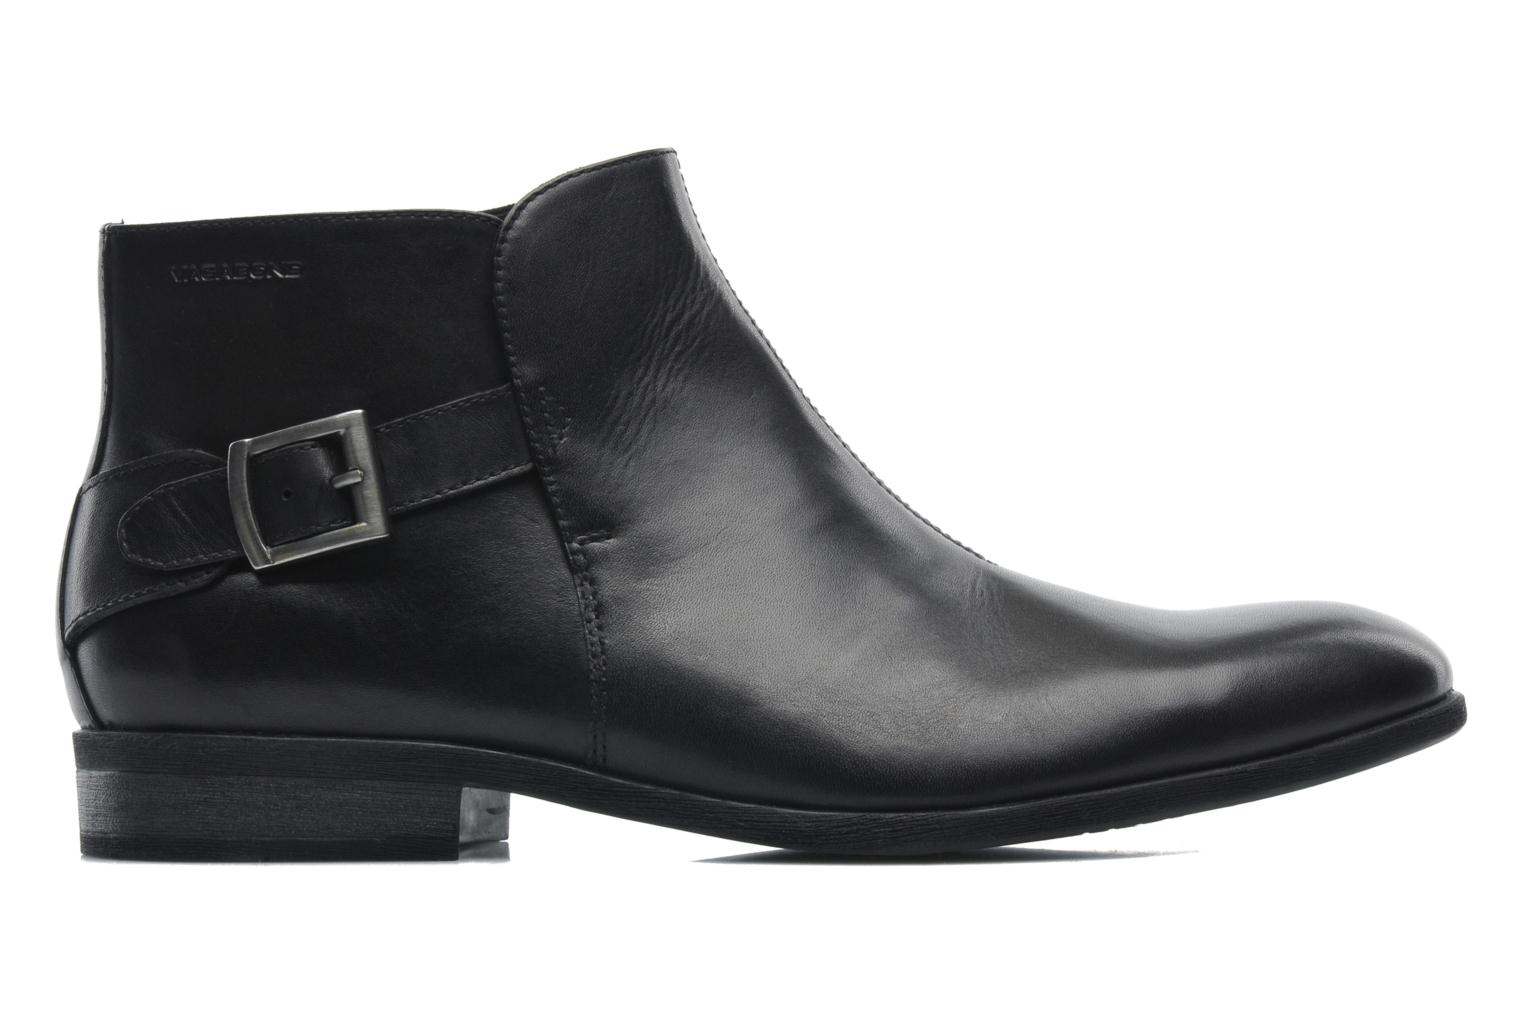 HUSTLE 001 Shoemakers BLACK 3863 20 Vagabond q6SvHn